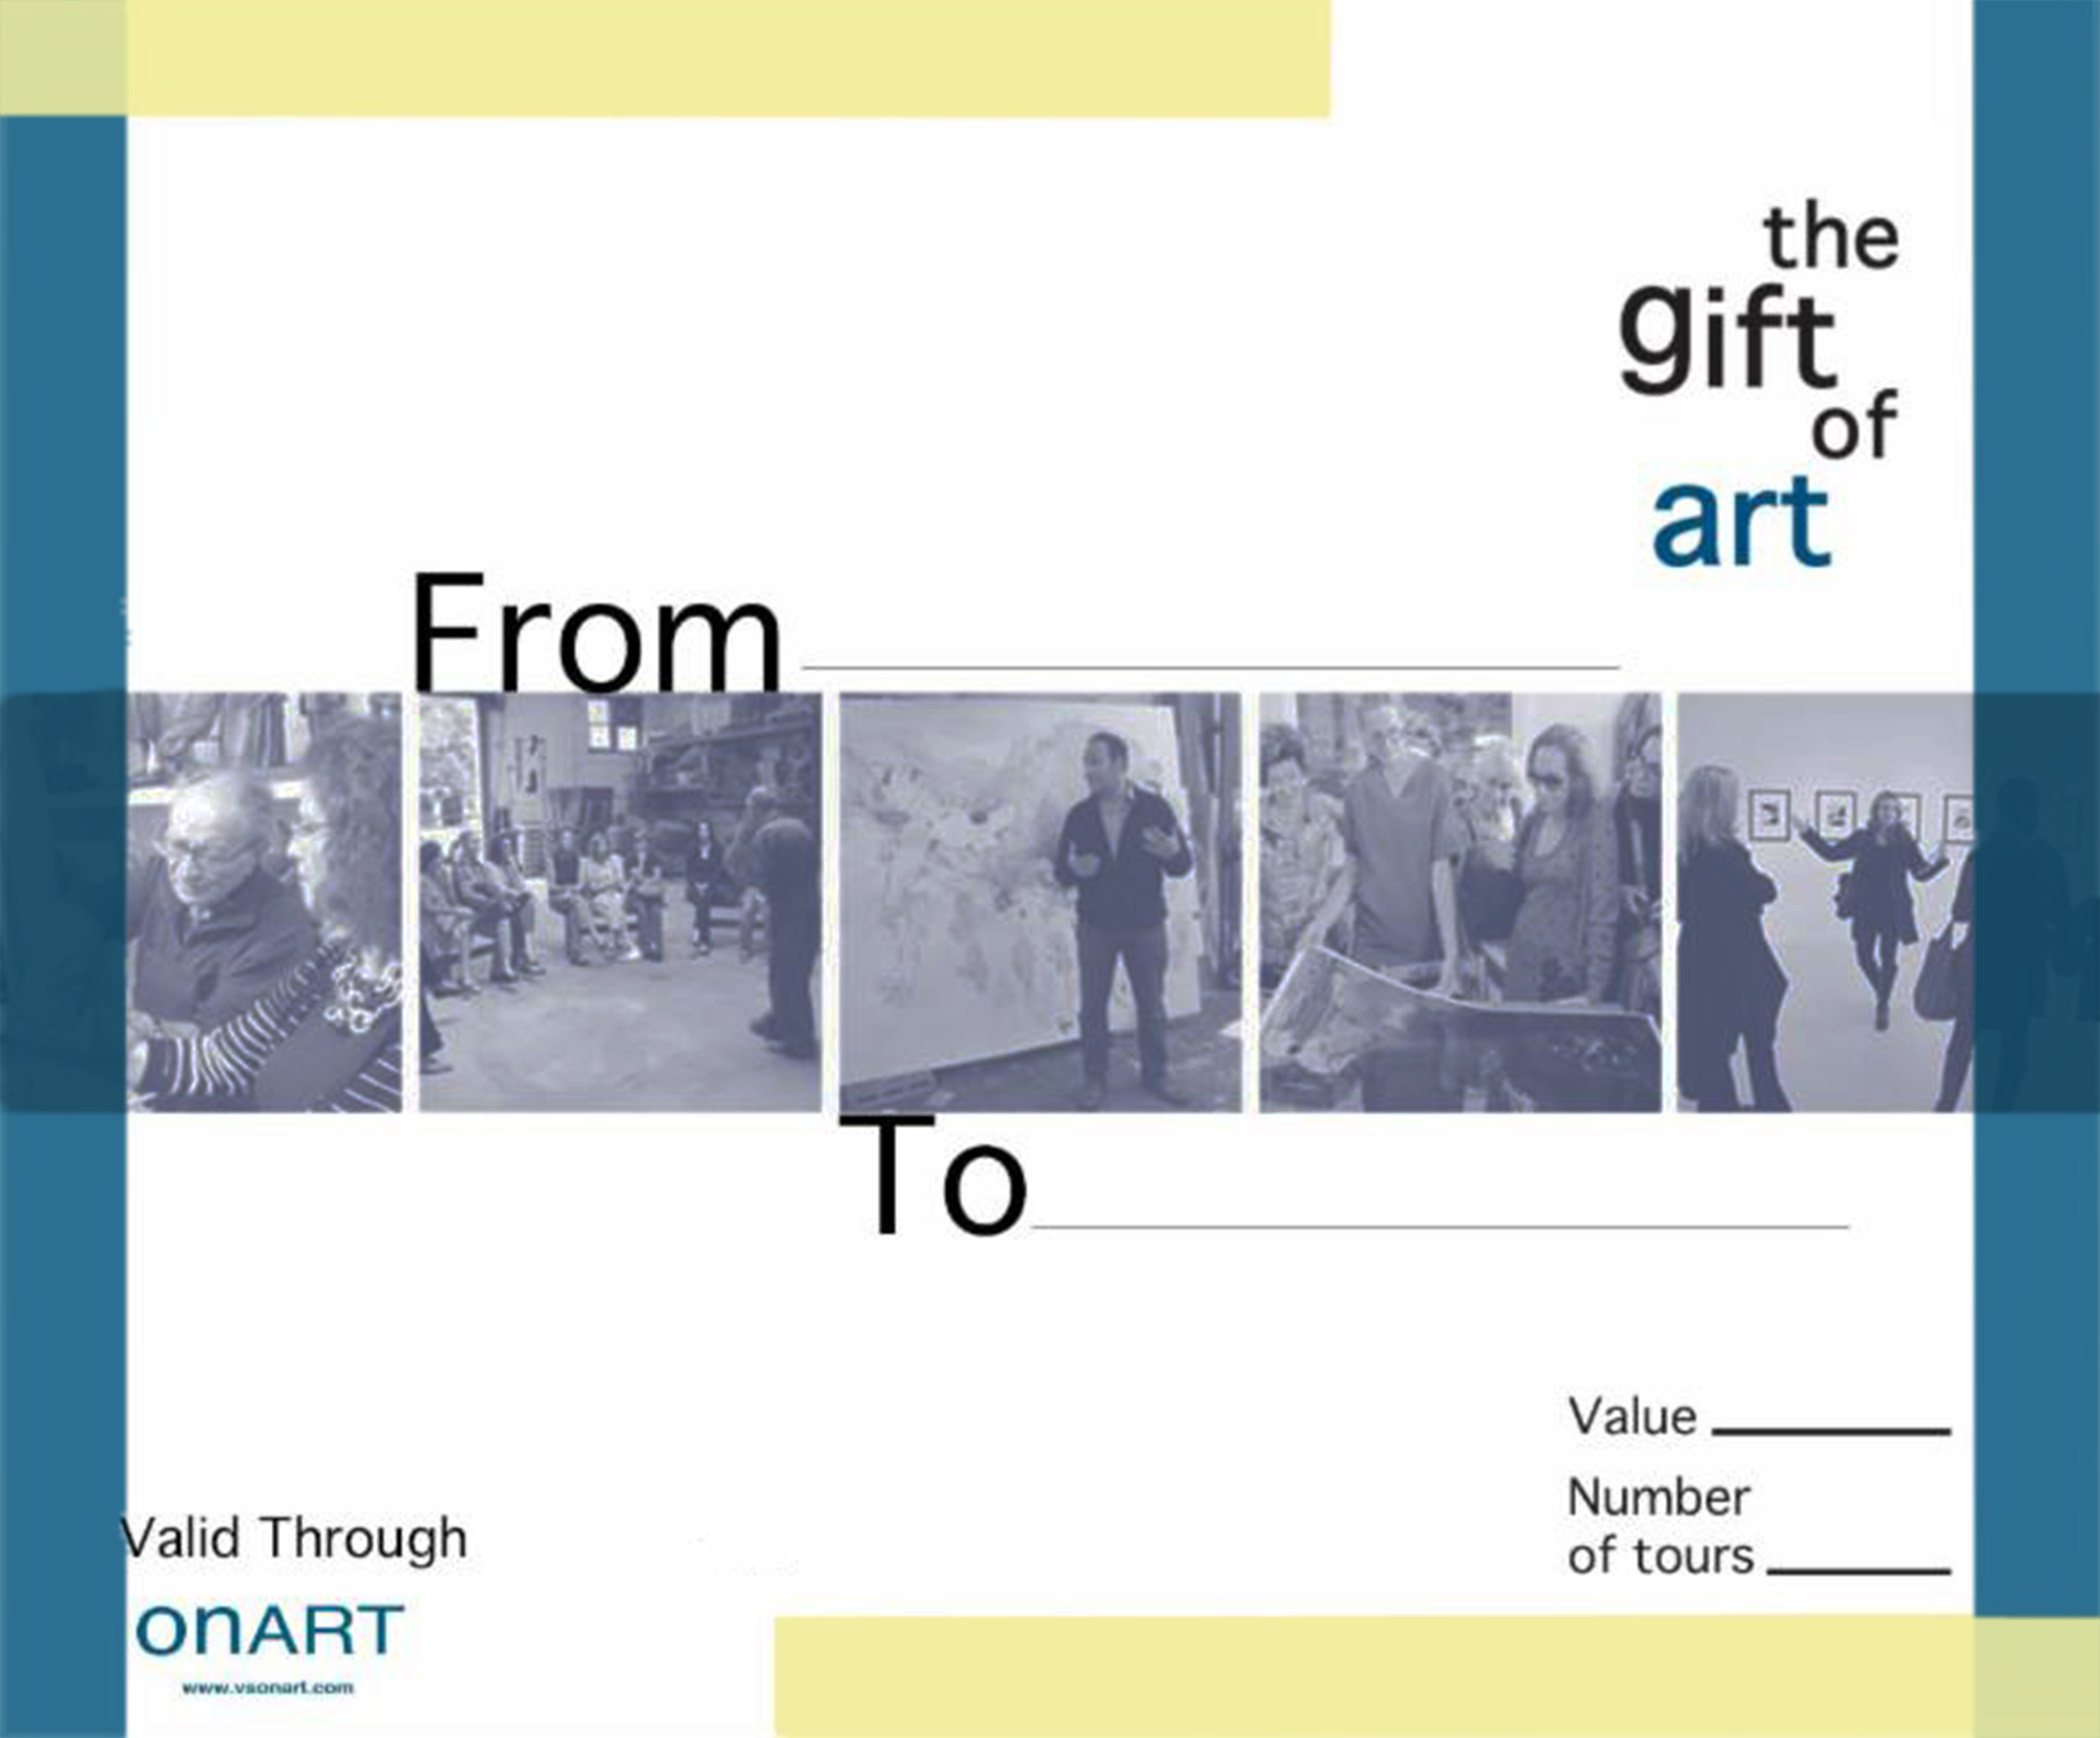 On Art gift certificate no date rough 5 by 7.jpg